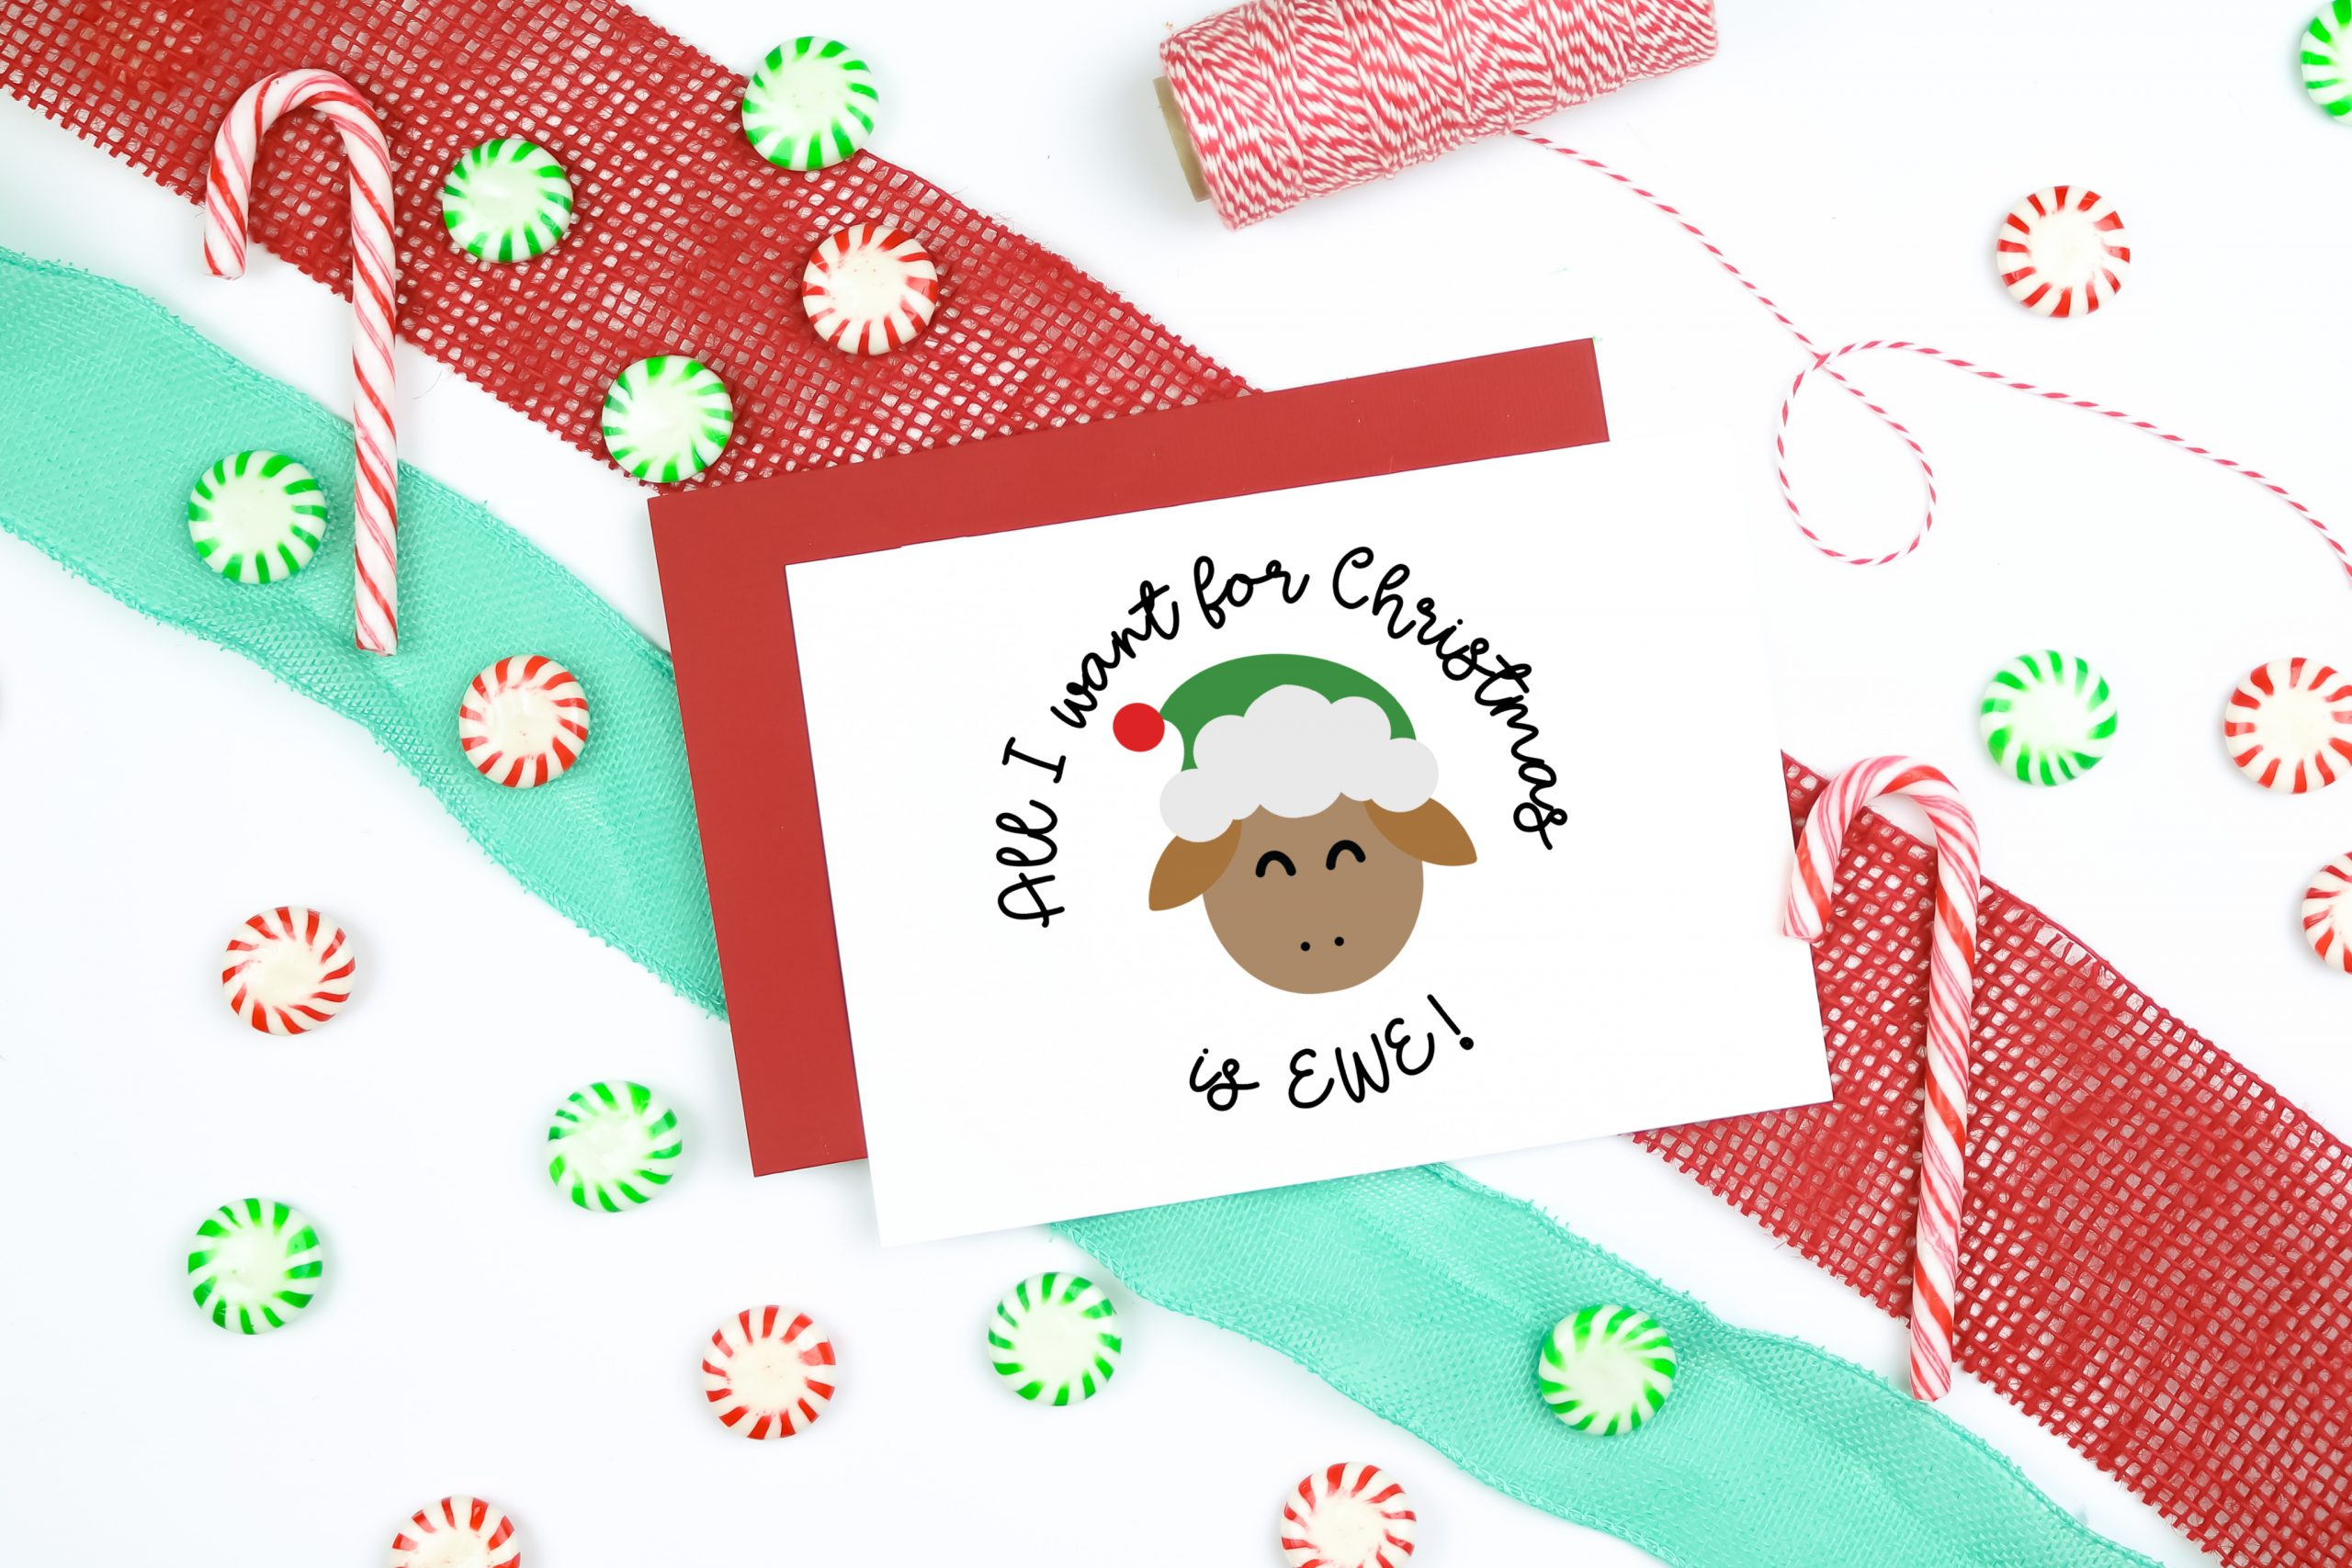 All I Want for Christmas is EWE SVG design on a christmas card with ribbon, candy, and twine